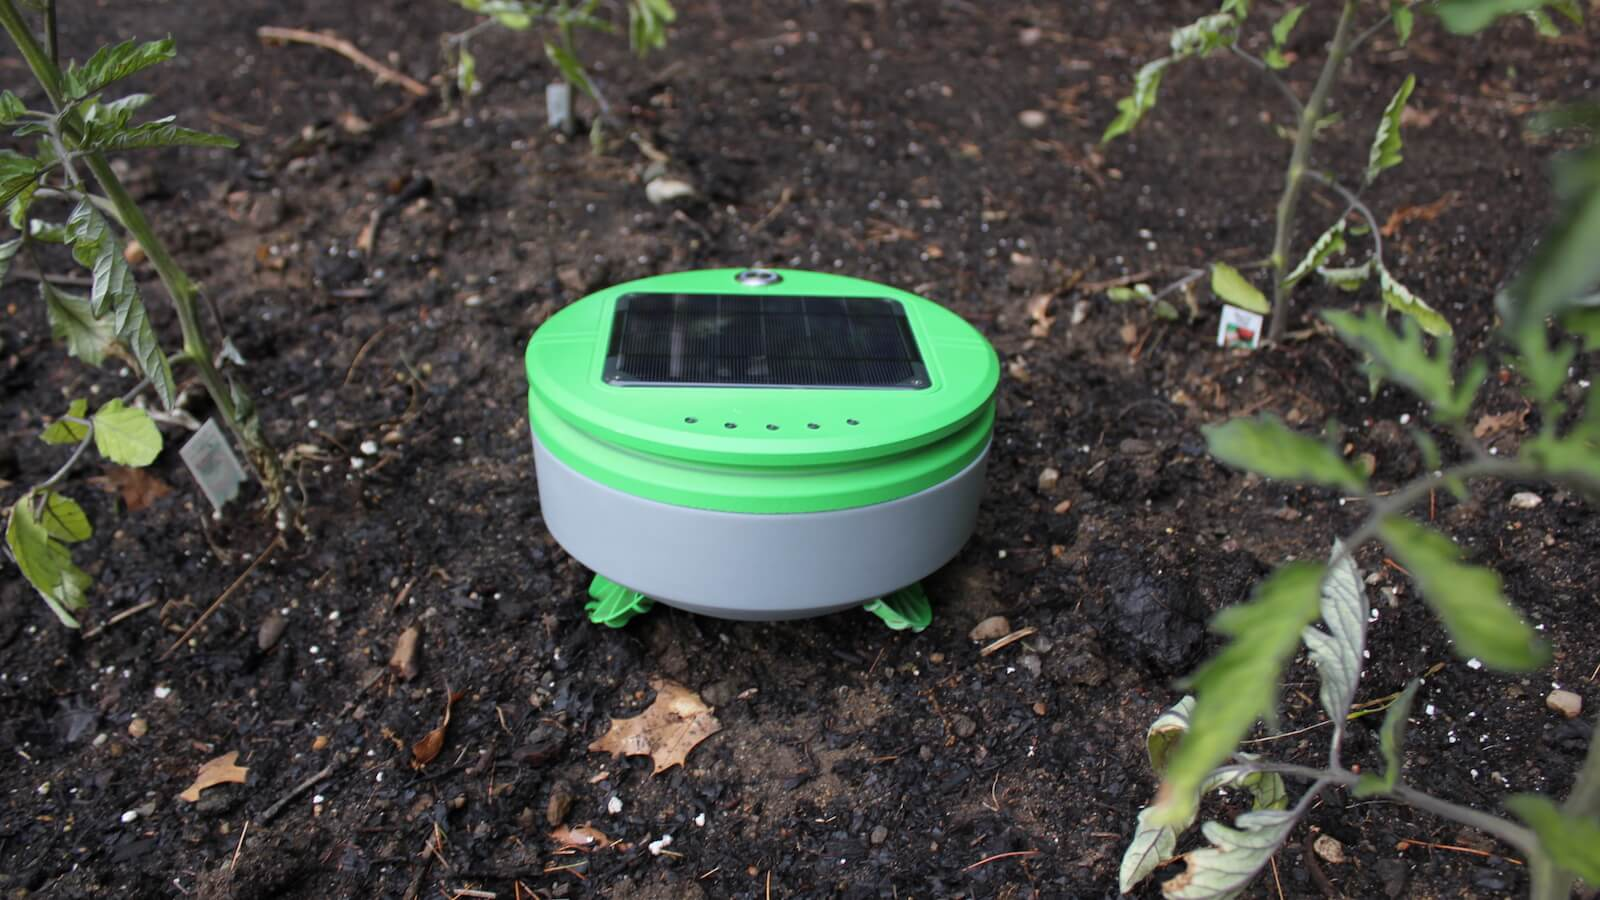 Tertill Weeding Robot is the perfect garden gadget for whacking weeds